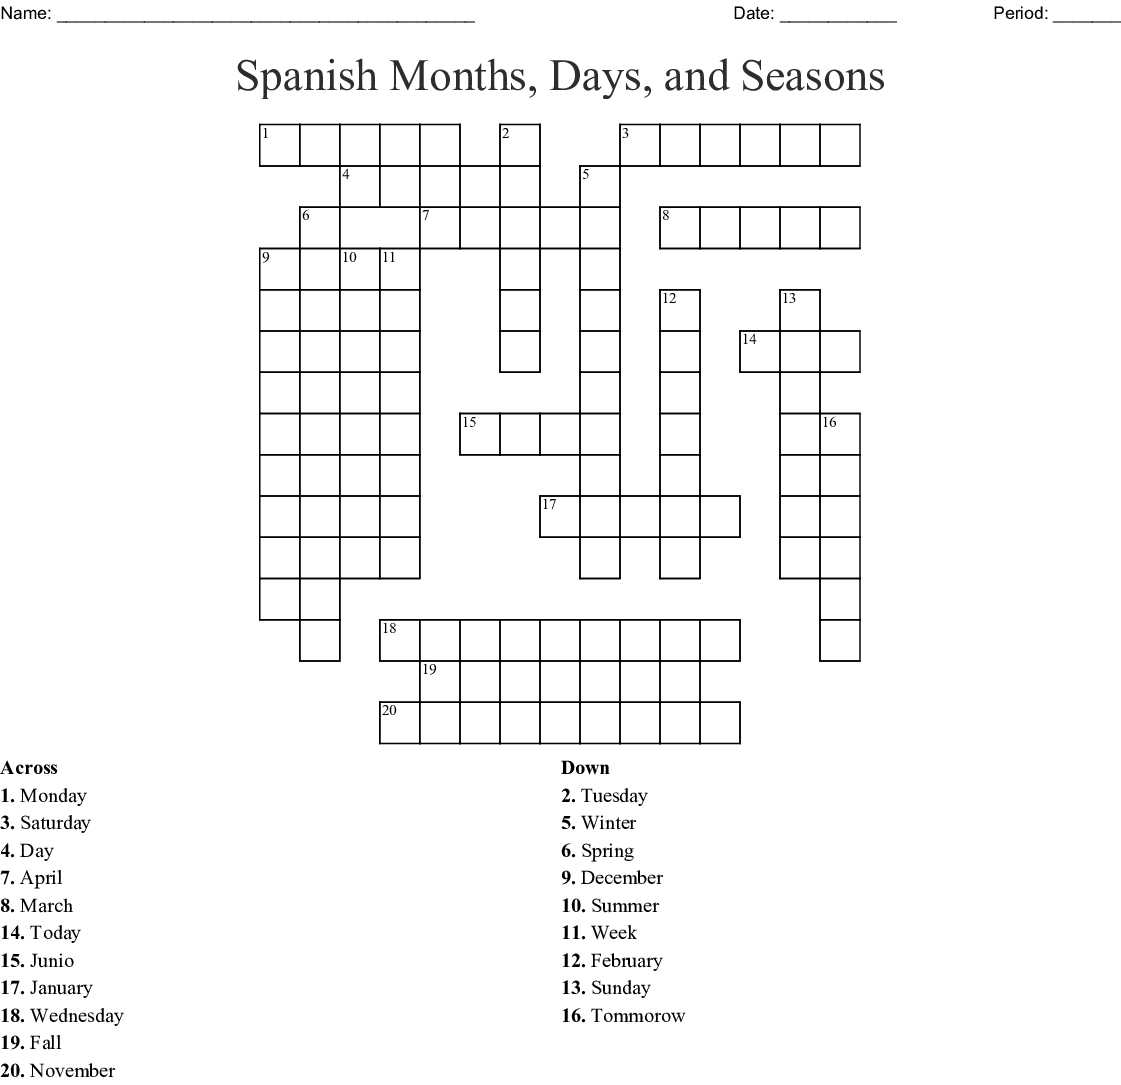 Spanish Months Days And Seasons Crossword